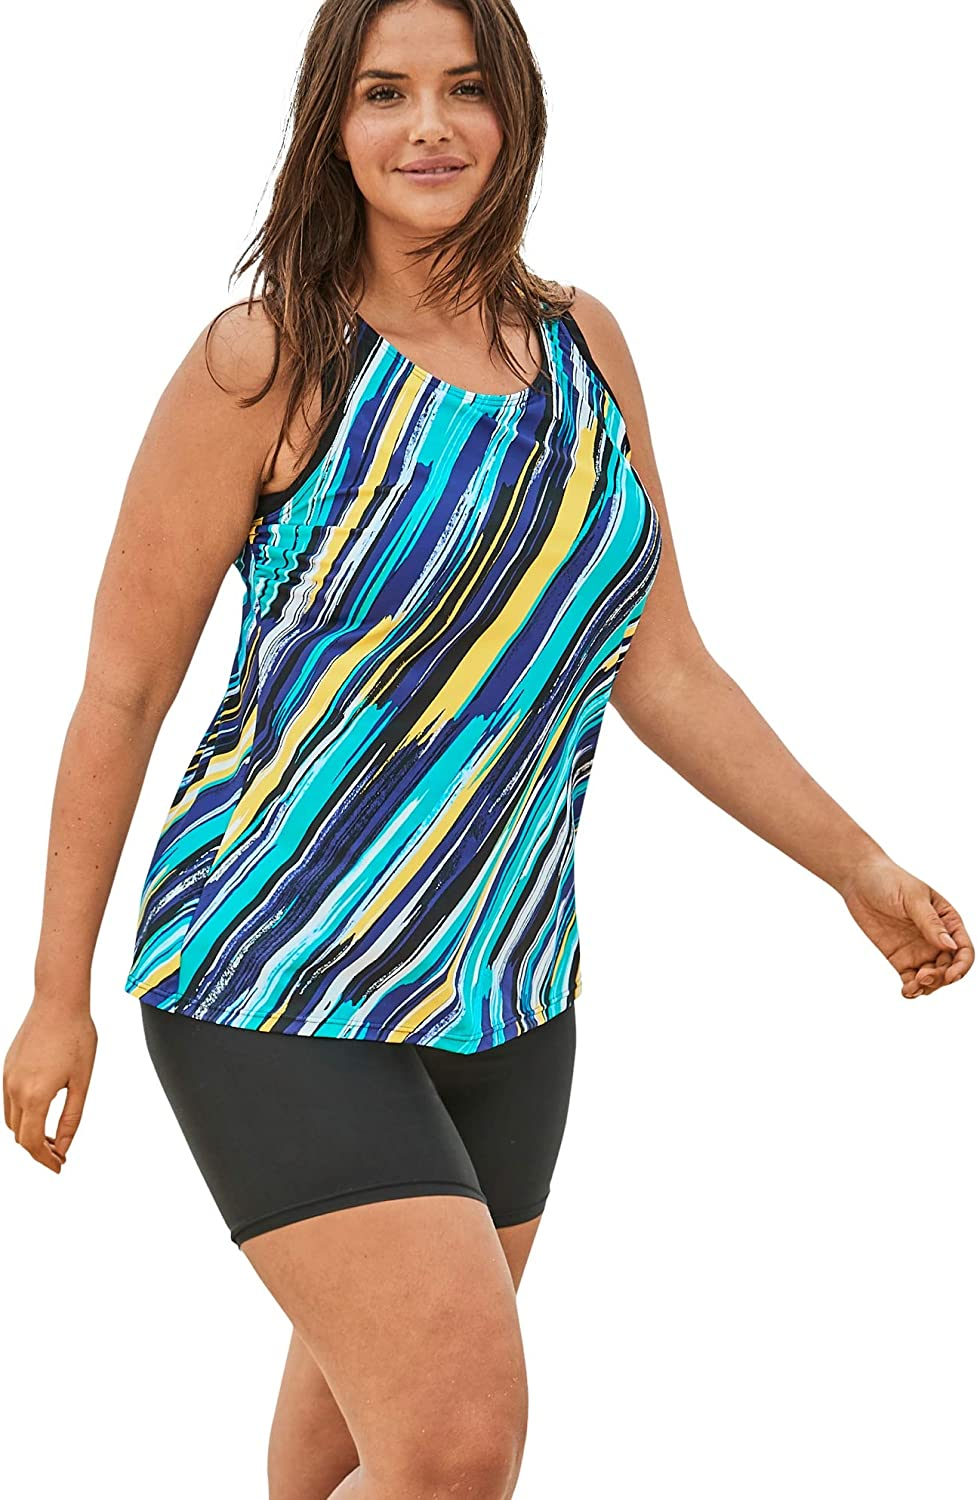 Swimsuits For All Women's Plus Size Longer Length Tankini Top